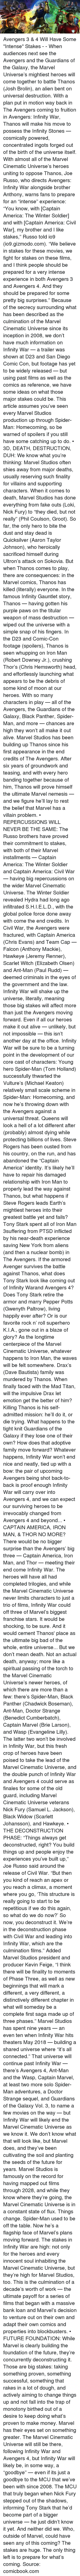 """Team Cap: Avengers 3 & 4 Will Have Some """"Intense"""" Stakes  - - When audiences next see the Avengers and the Guardians of the Galaxy, the Marvel Universe's mightiest heroes will come together to battle Thanos (Josh Brolin), an alien bent on universal destruction.  With a plan put in motion way back in The Avengers coming to fruition in Avengers: Infinity War, Thanos will make his move to possess the Infinity Stones — cosmically powered, concentrated ingots forged out of the birth of the universe itself. With almost all of the Marvel Cinematic Universe's heroes uniting to oppose Thanos, Joe Russo, who directs Avengers: Infinity War alongside brother Anthony, warns fans to prepare for an """"intense"""" experience:  """"You know, with [Captain America: The Winter Soldier] and with [Captain America: Civil War], my brother and I like stakes,"""" Russo told io9 (io9.gizmodo.com). """"We believe in stakes for these movies, we fight for stakes on these films, and I think people should be prepared for a very intense experience in both Avengers 3 and Avengers 4. And they should be prepared for some pretty big surprises.""""  Because of the secrecy surrounding what has been described as the culmination of the Marvel Cinematic Universe since its inception in 2008, we don't have much information on Infinity War — a trailer was shown at D23 and San Diego Comic Con, but footage has yet to be widely released — but using past films as well as the comics as reference, we have some ideas on what those major stakes could be.  This article assumes you've seen every Marvel Studios production up through Spider-Man: Homecoming, so be warned of spoilers if you still have some catching up to do.  • 3D, DEATH, DESTRUCTION, DUH:  We know what you're thinking: Marvel Studios often shies away from major deaths, usually reserving such finality for villains and supporting characters. When it comes to death, Marvel Studios has done everything from fake outs (Loki, Nick Fury) to """"they died, but not really"""" (Phil Couls"""